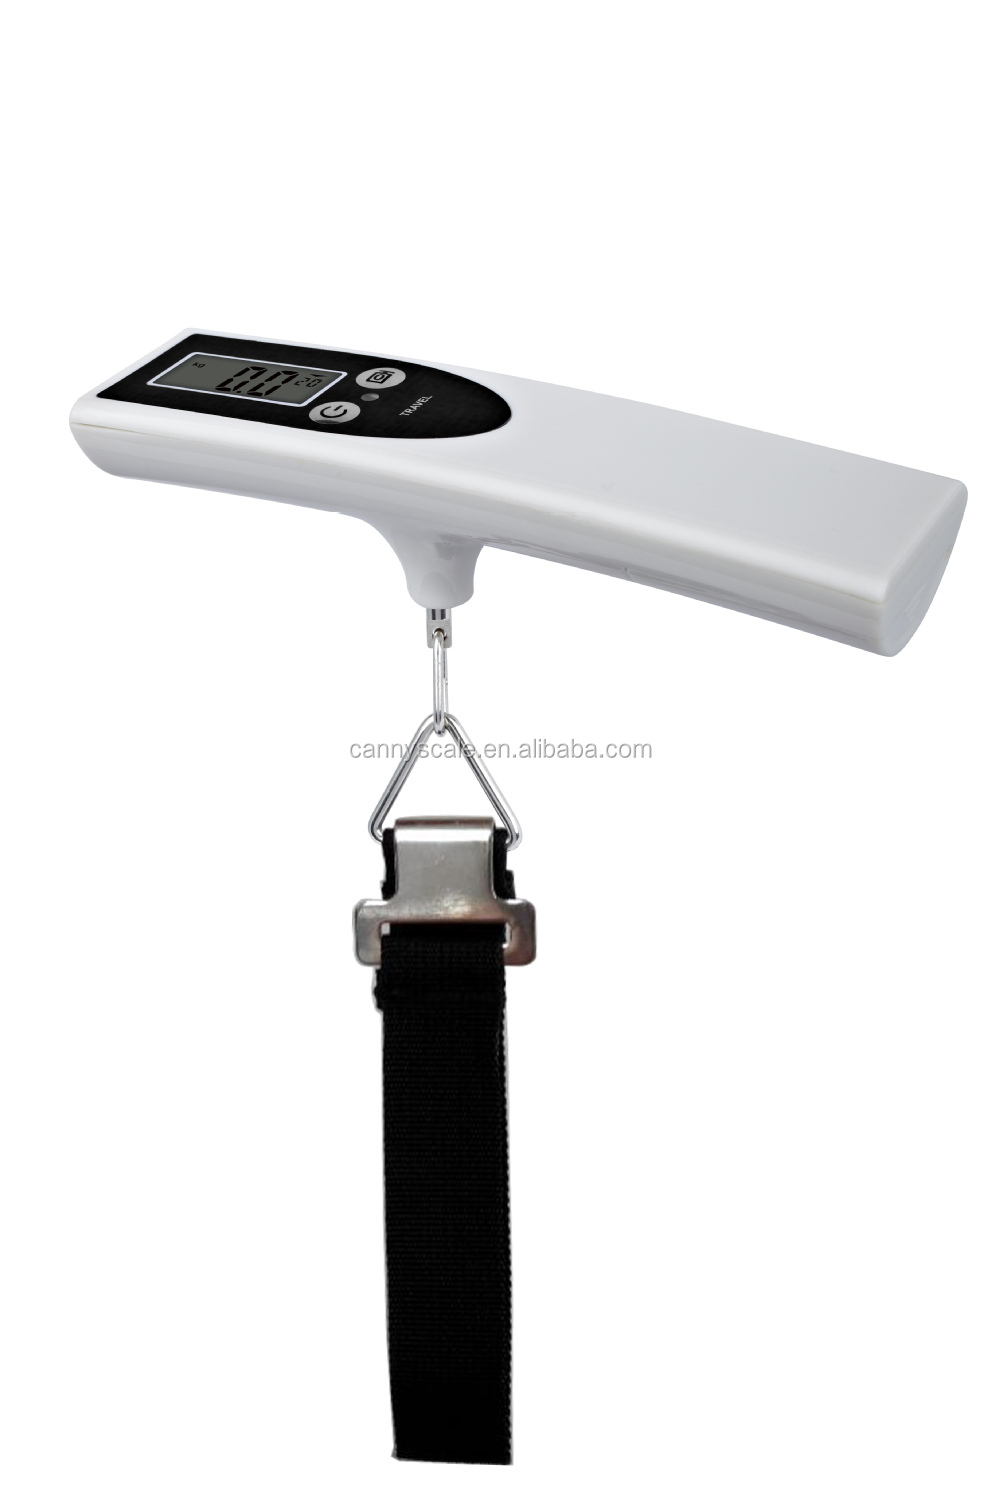 luggage scale 77.jpg